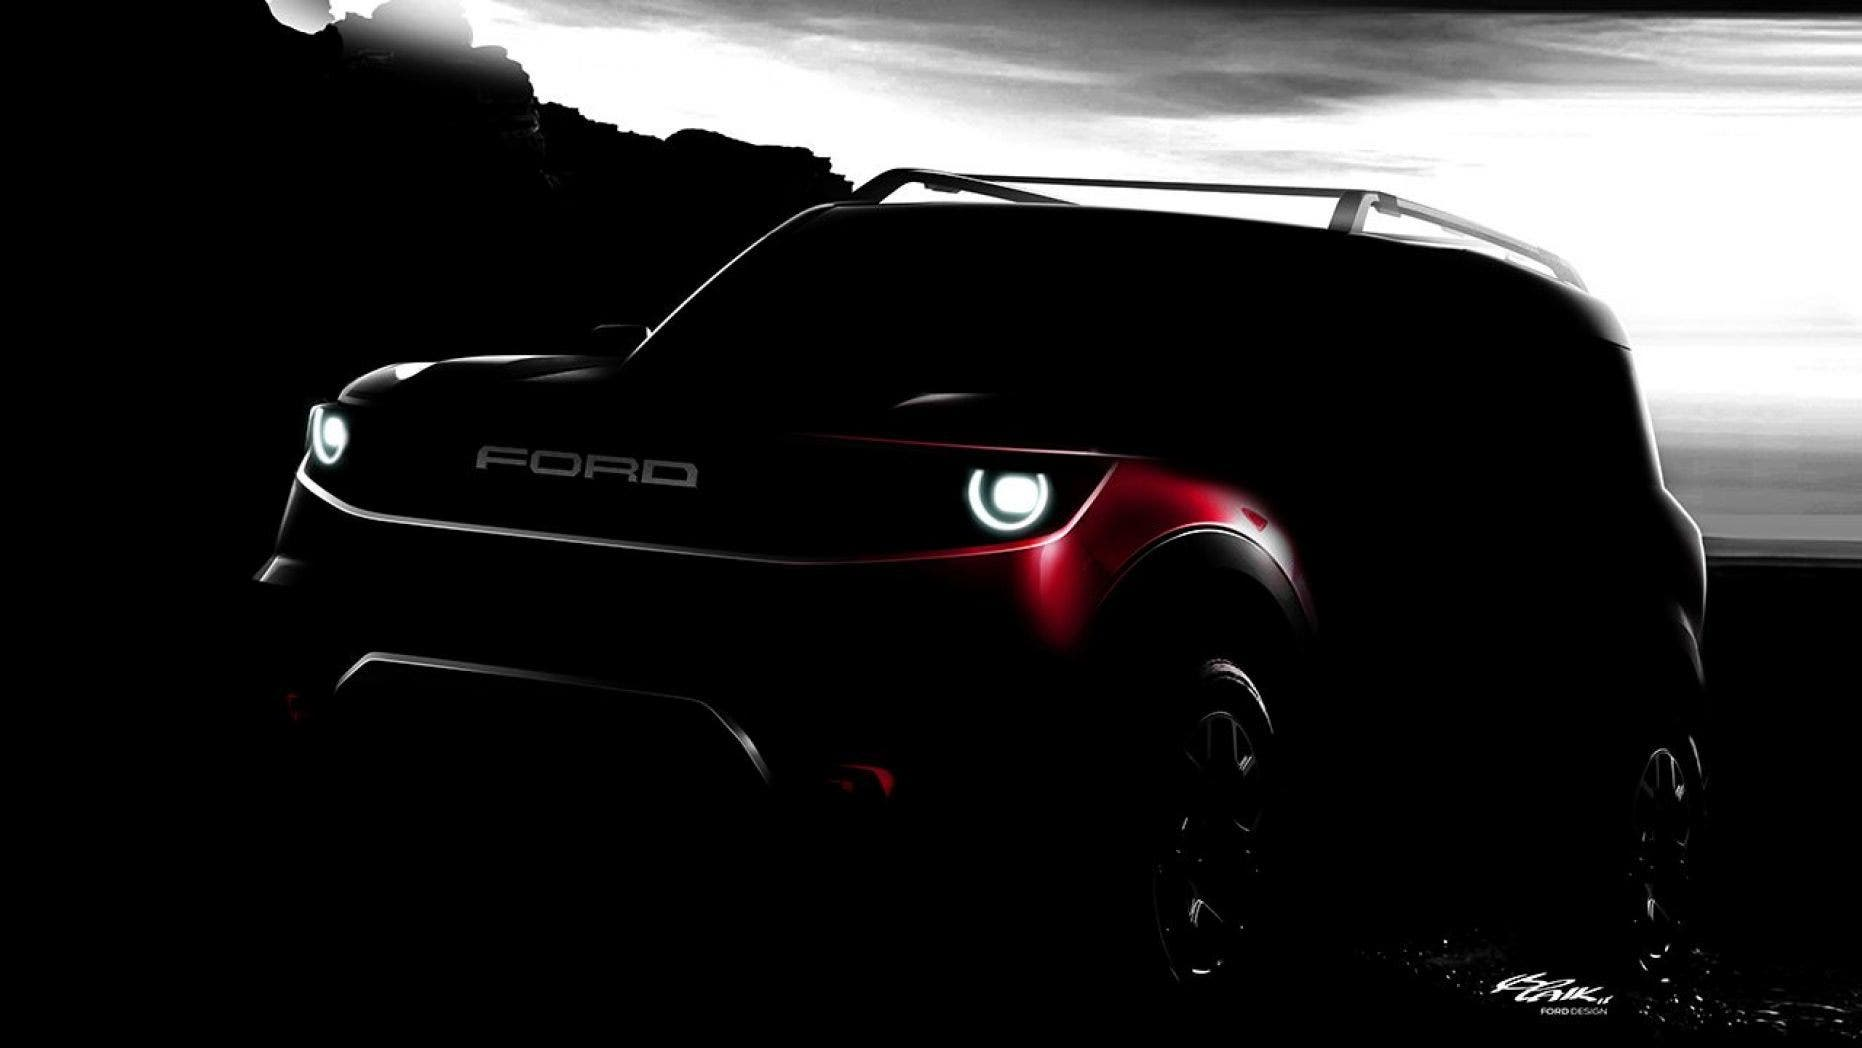 Ford has not yet announced the name of its baby bronco suv